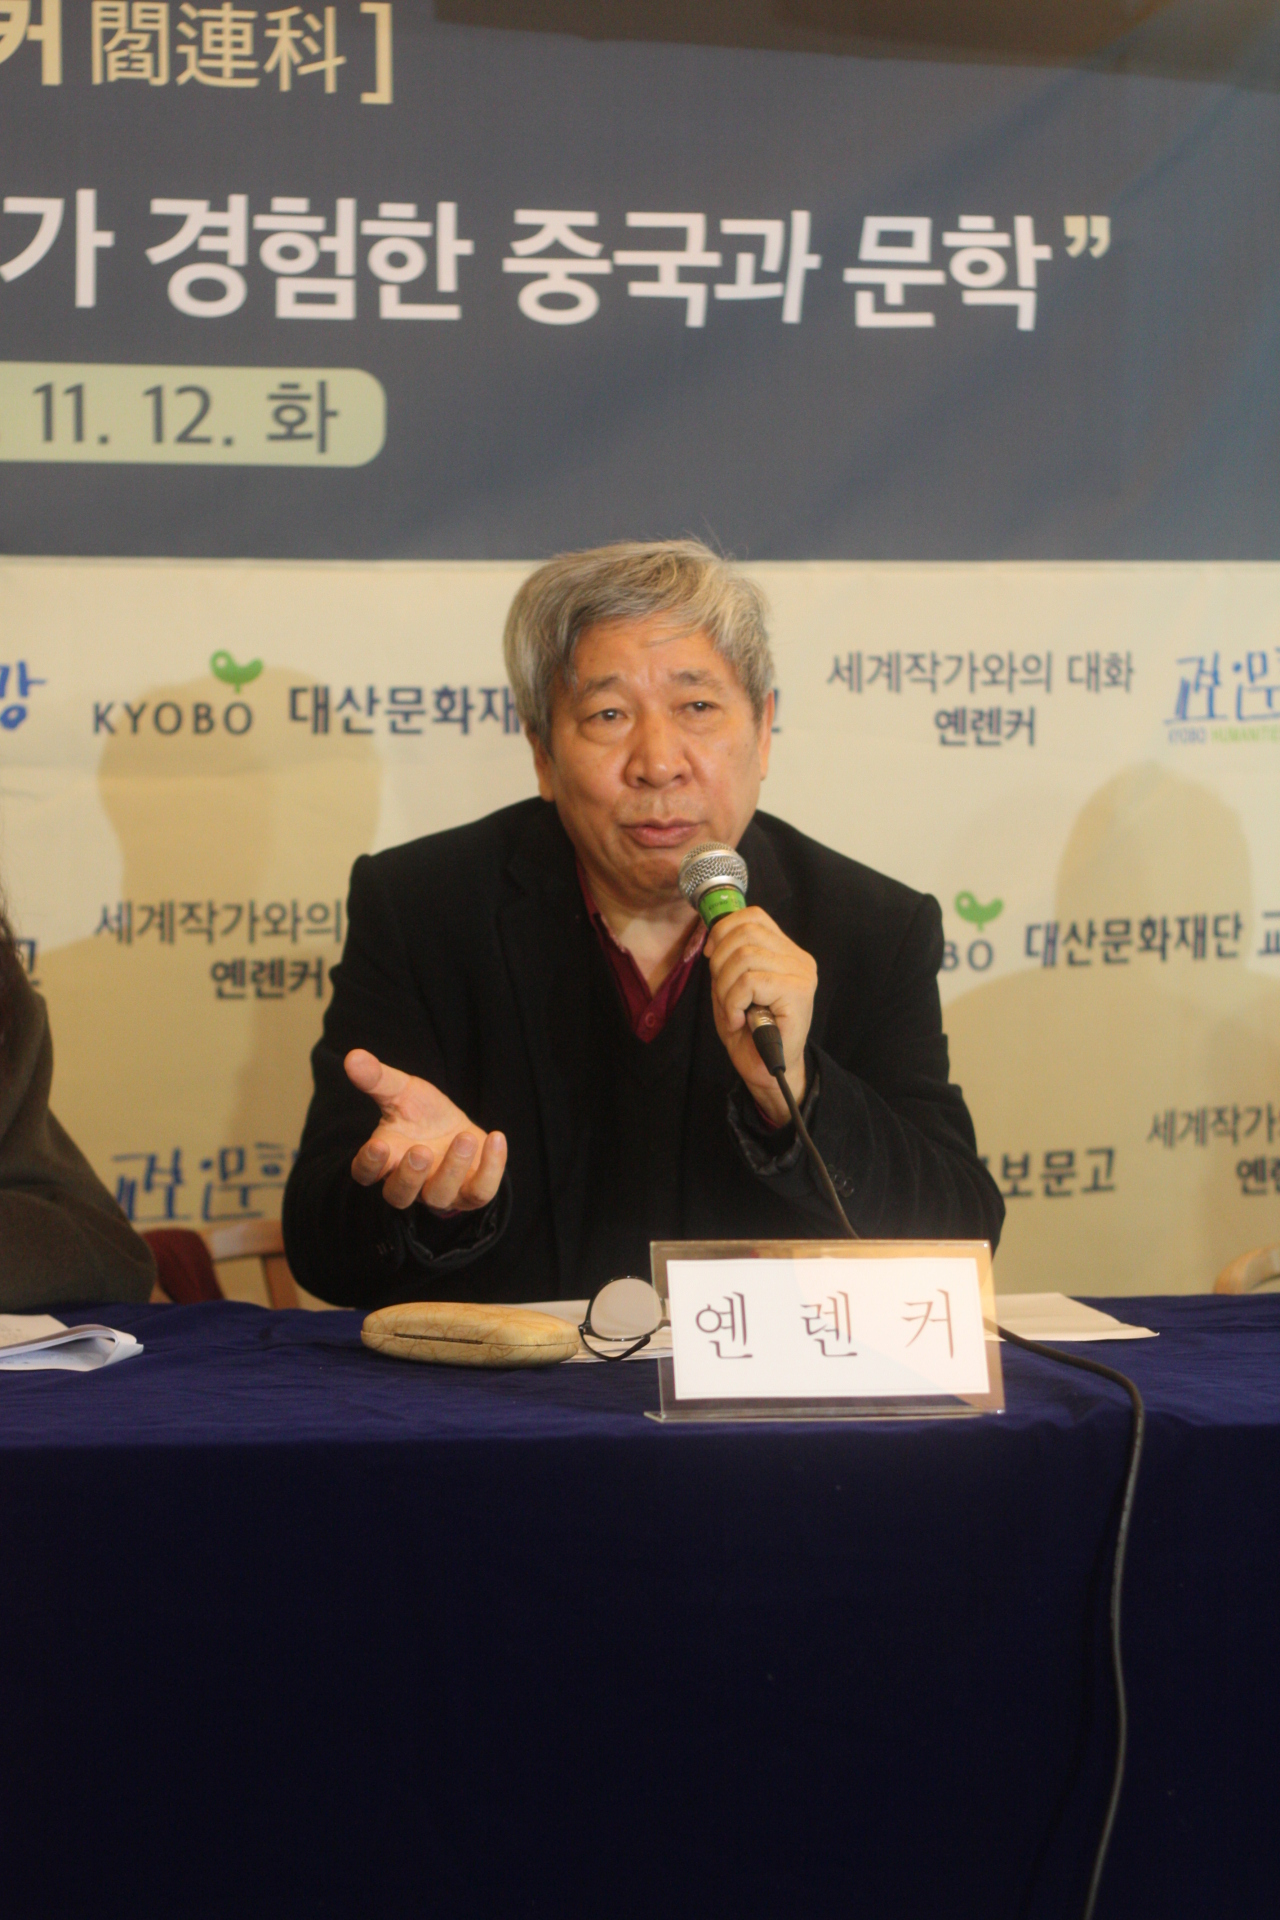 Yan Lianke speaks at a press conference hosted by the Daesan Foundation and the Kyobo Book Center on Tuesday in Seoul. (The Daesan Foundation)